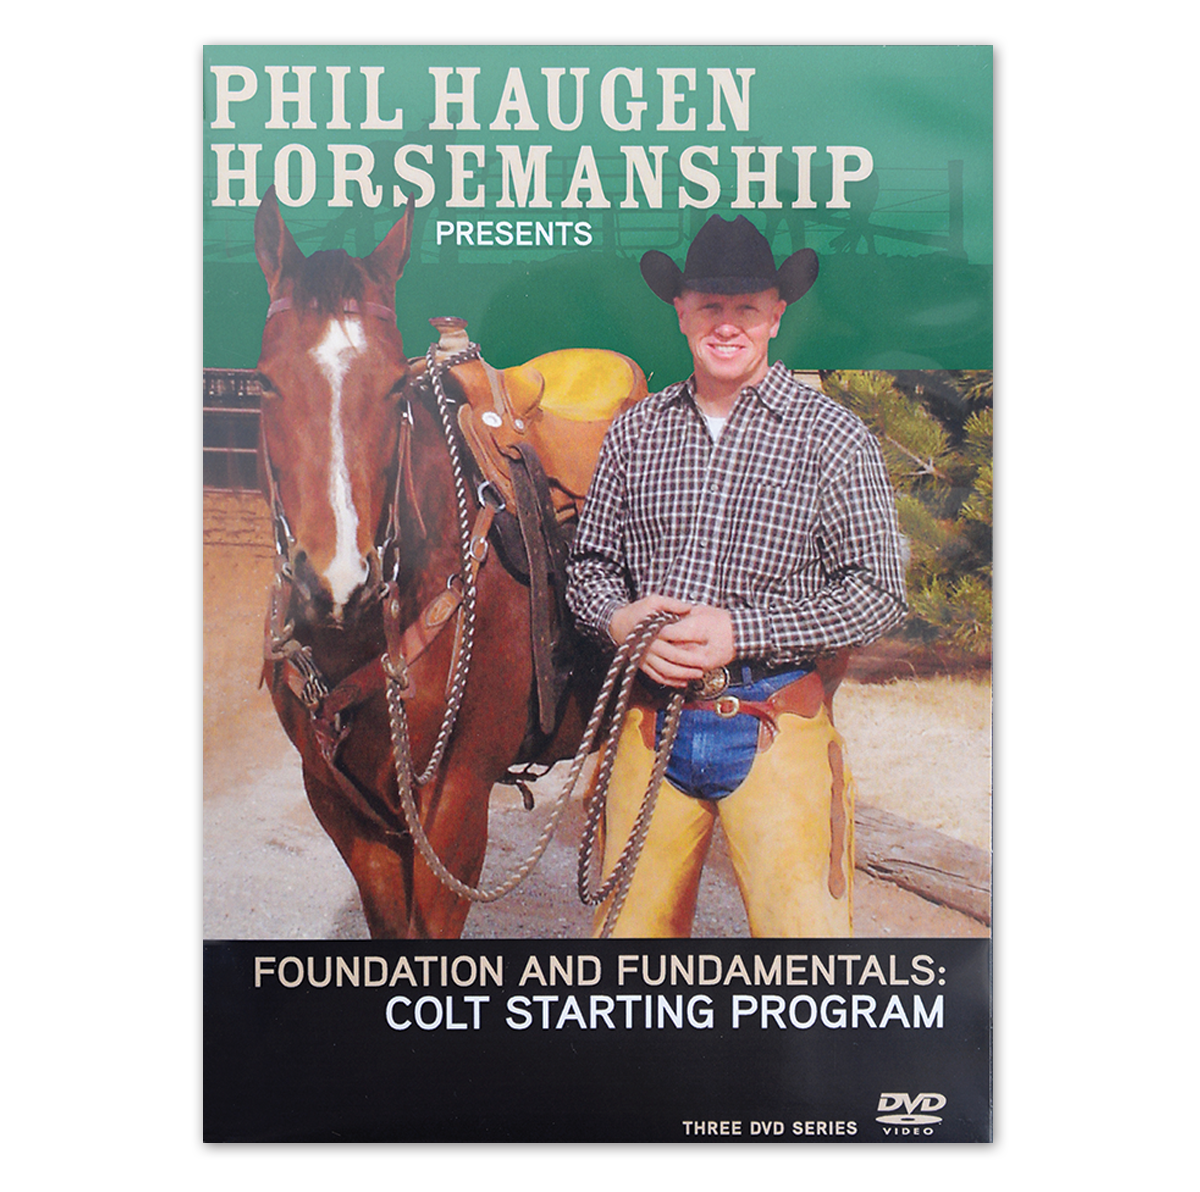 Phil Haugen Foundation and Fundamentals DVD Series